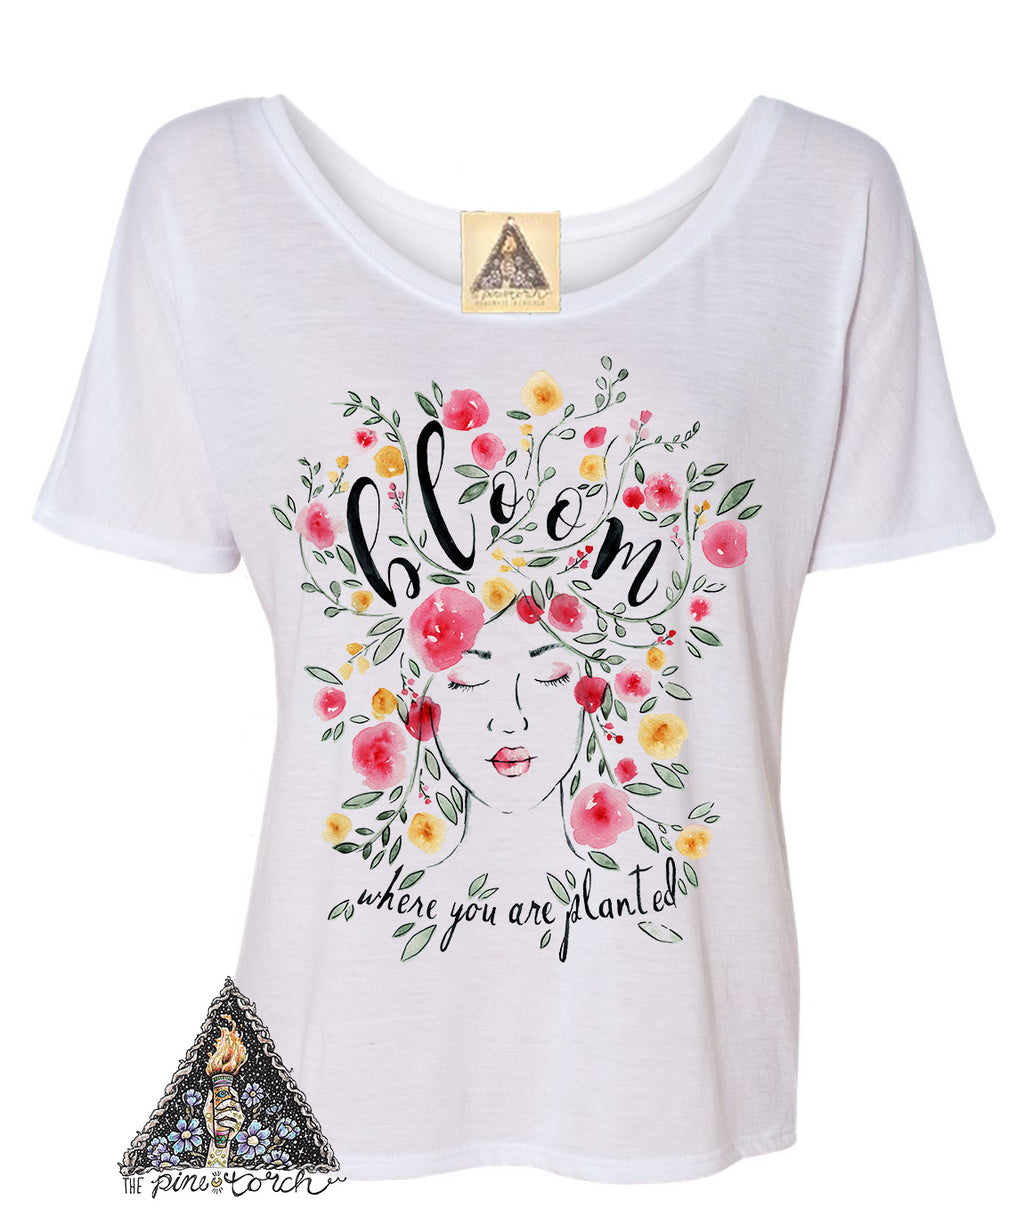 « BLOOM WHERE YOU ARE PLANTED » WOMEN'S SLOUCHY OR UNISEX TEE